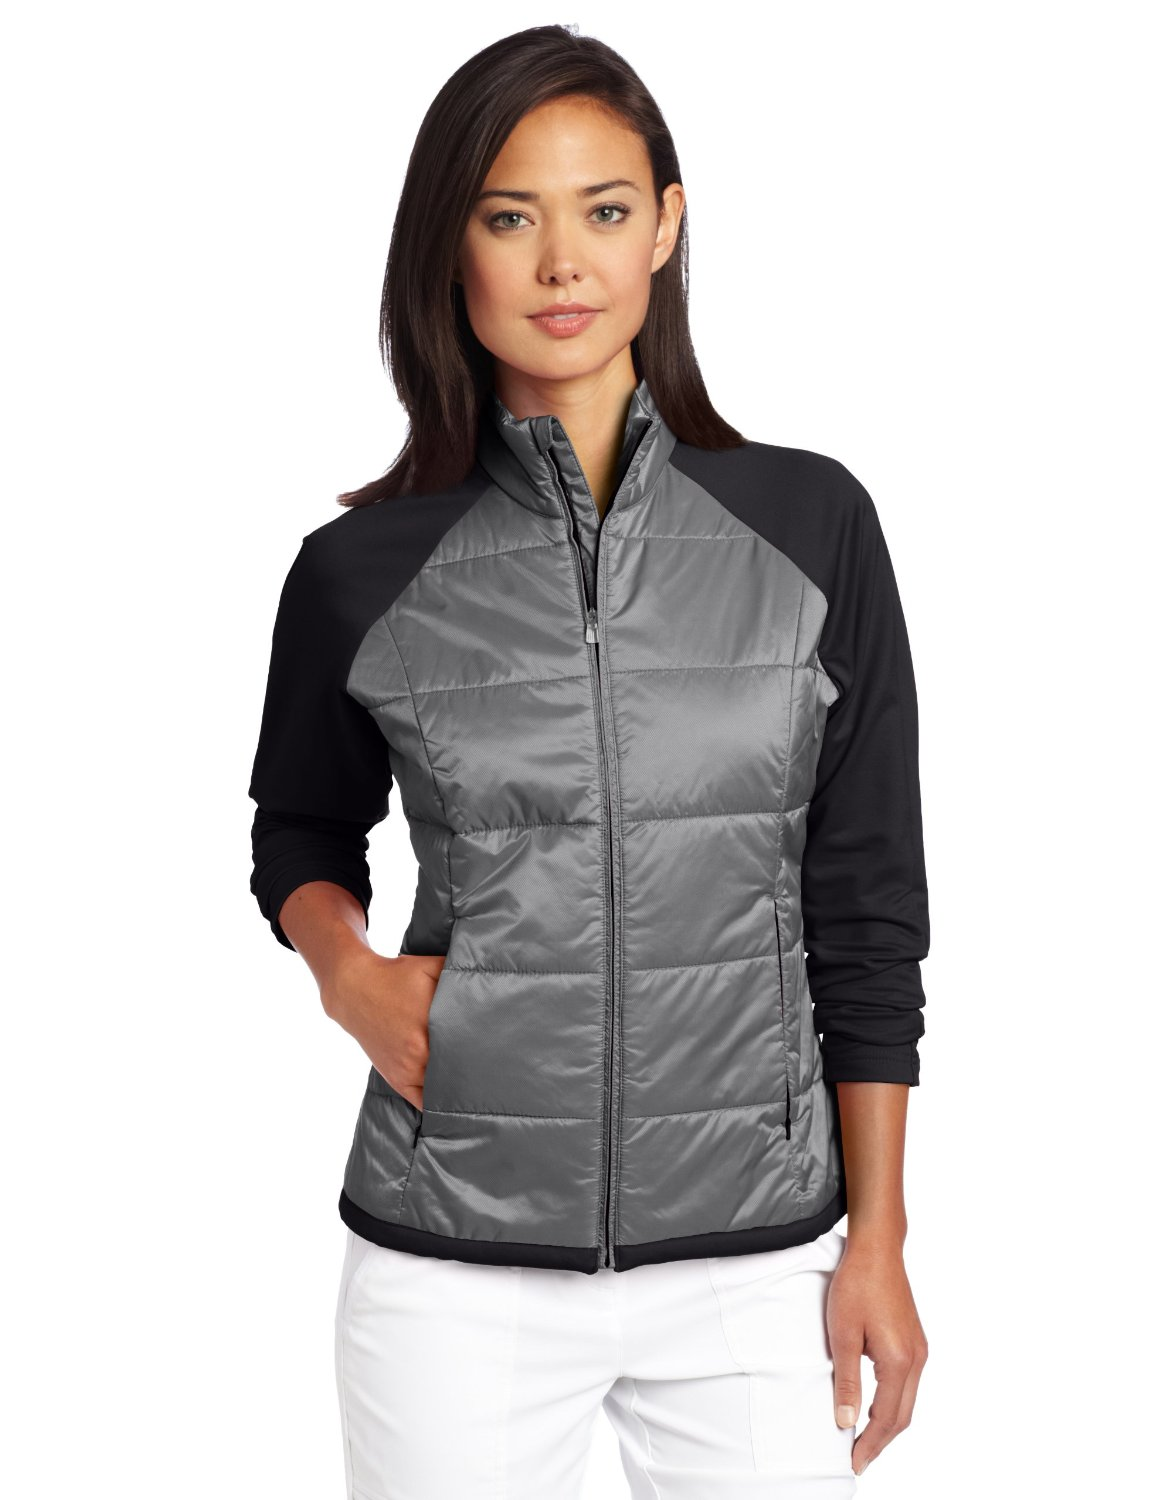 Adidas Womens Golf Jackets